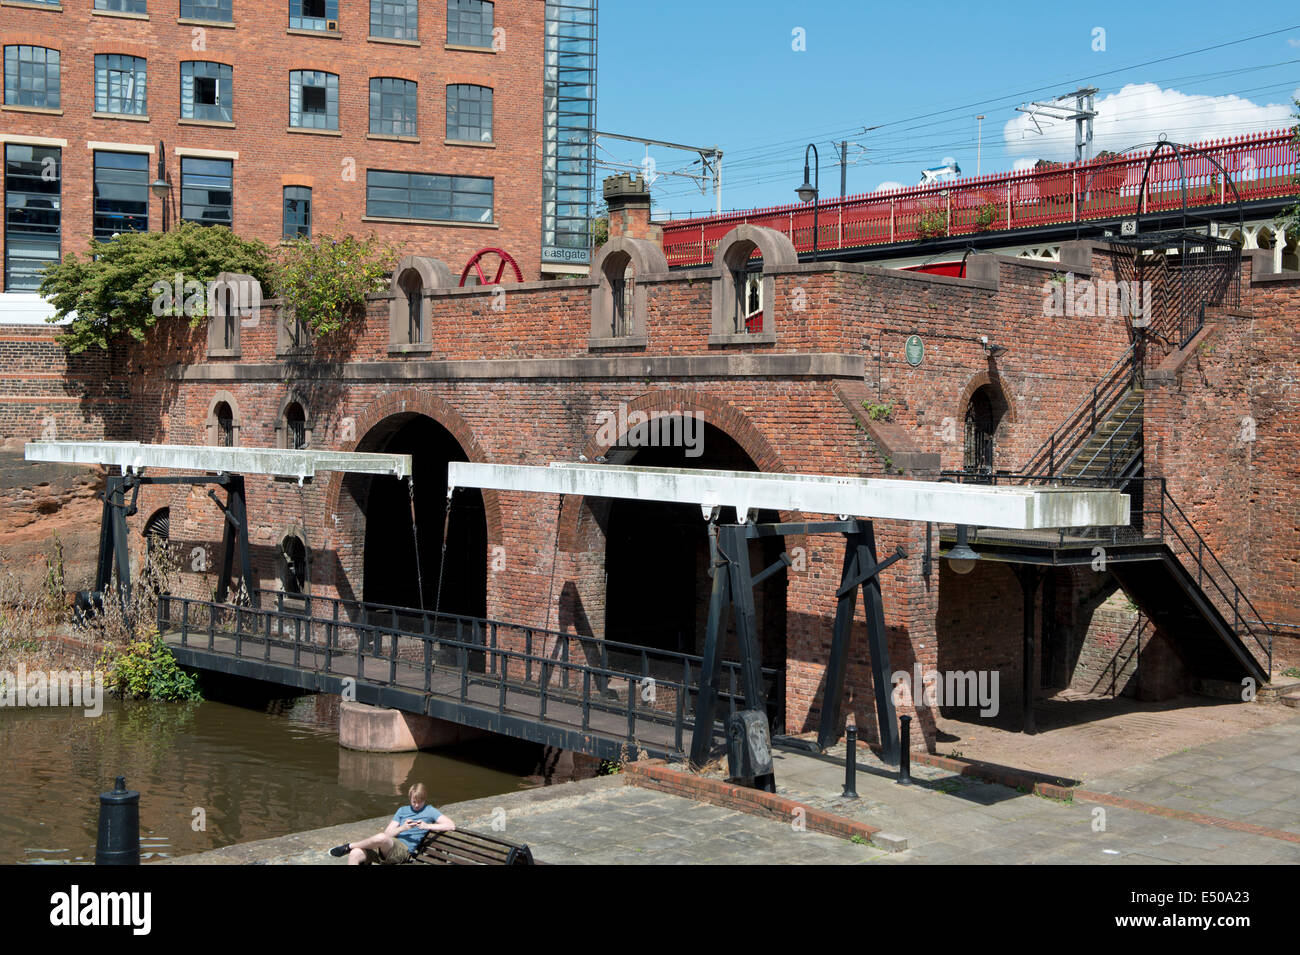 Site of The Grocer's Warehouse in Castlefield Urban Heritage Park and historic inner city canal conservation - Stock Image